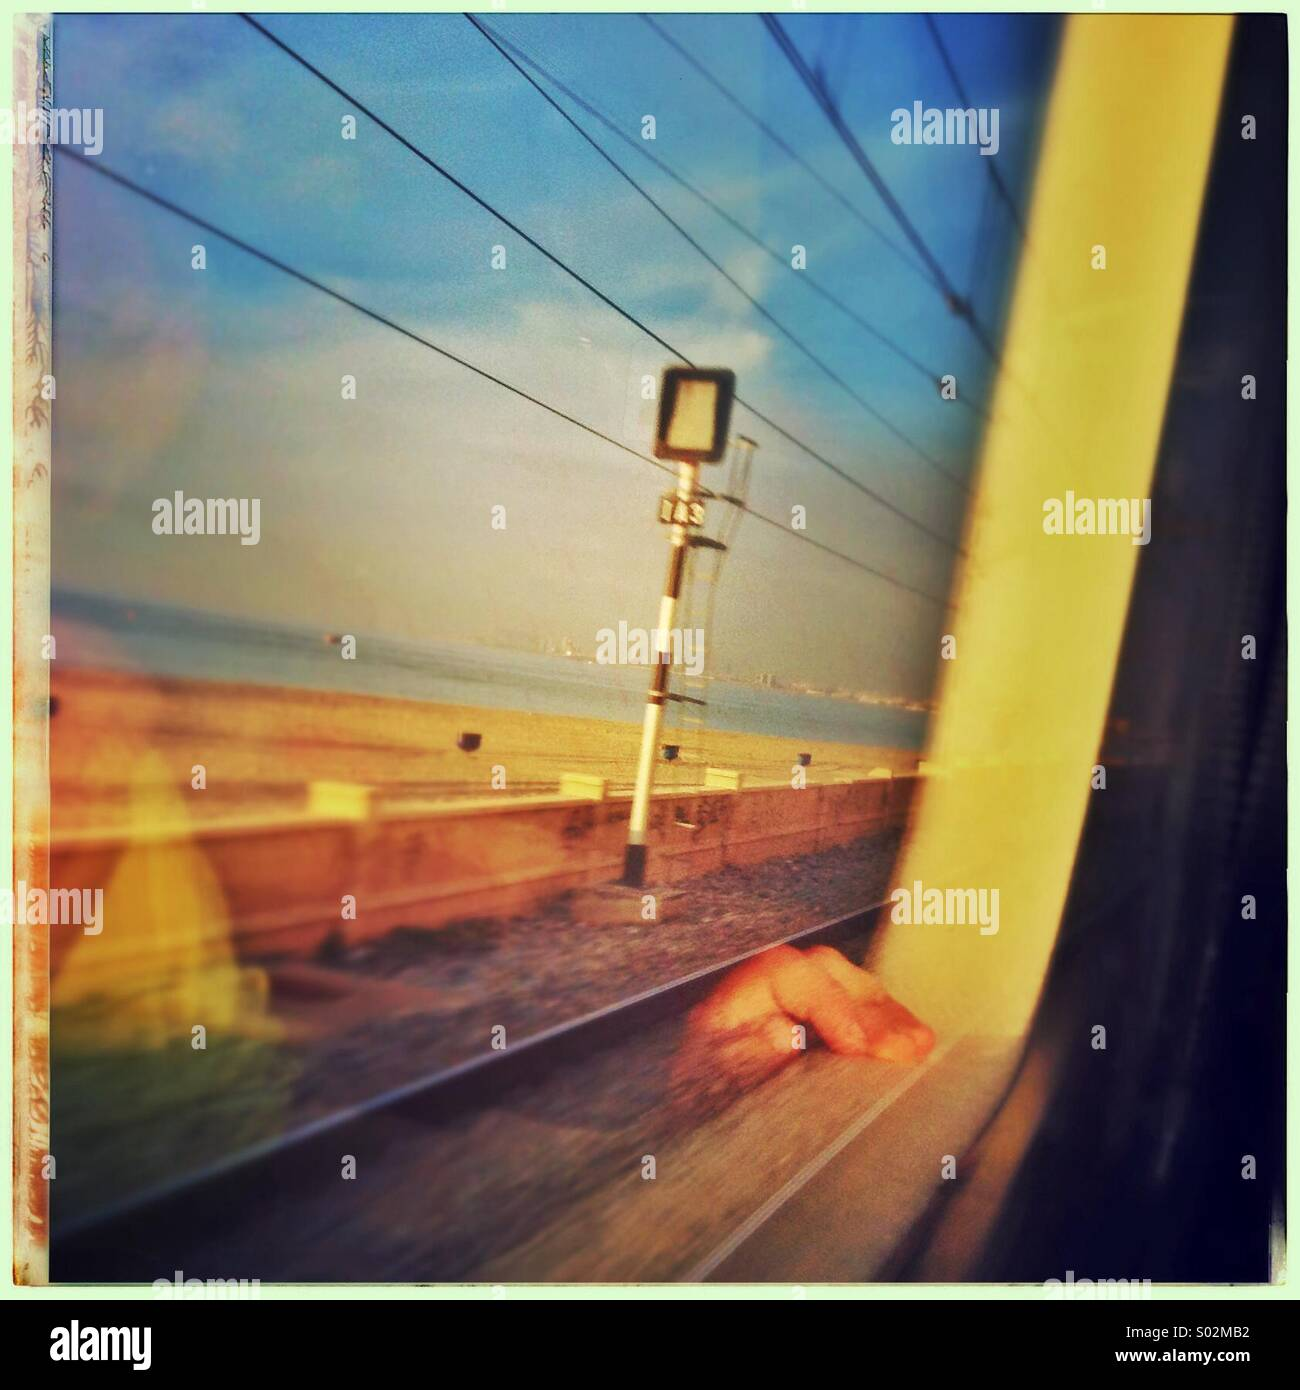 Reflection of a hand of a young boy looking out of train window on the north of Barcelona coast, Catalonia, Spain Stock Photo